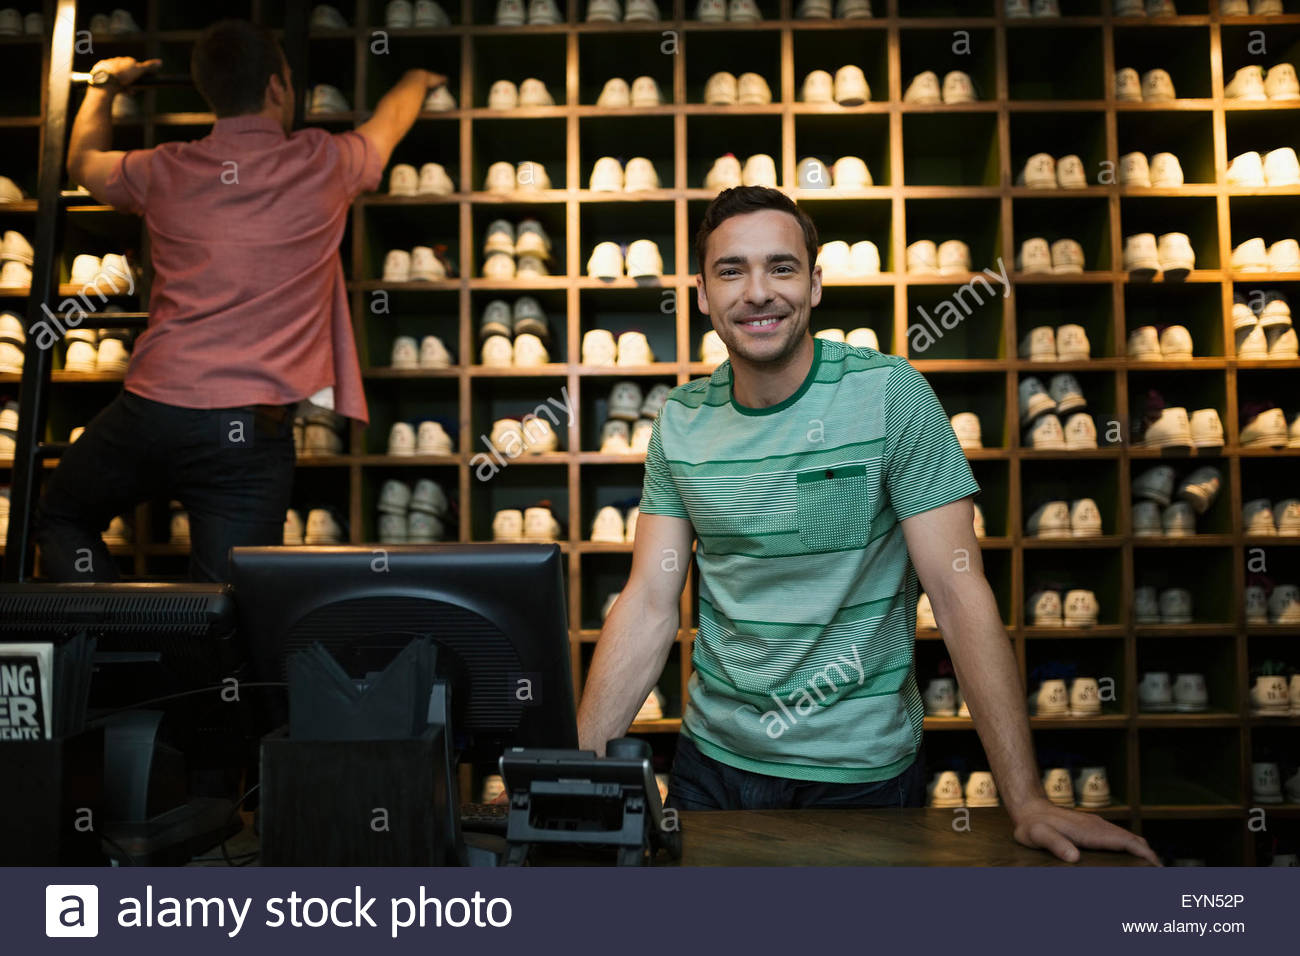 Portrait confident worker shoe rental counter bowling alley - Stock Image